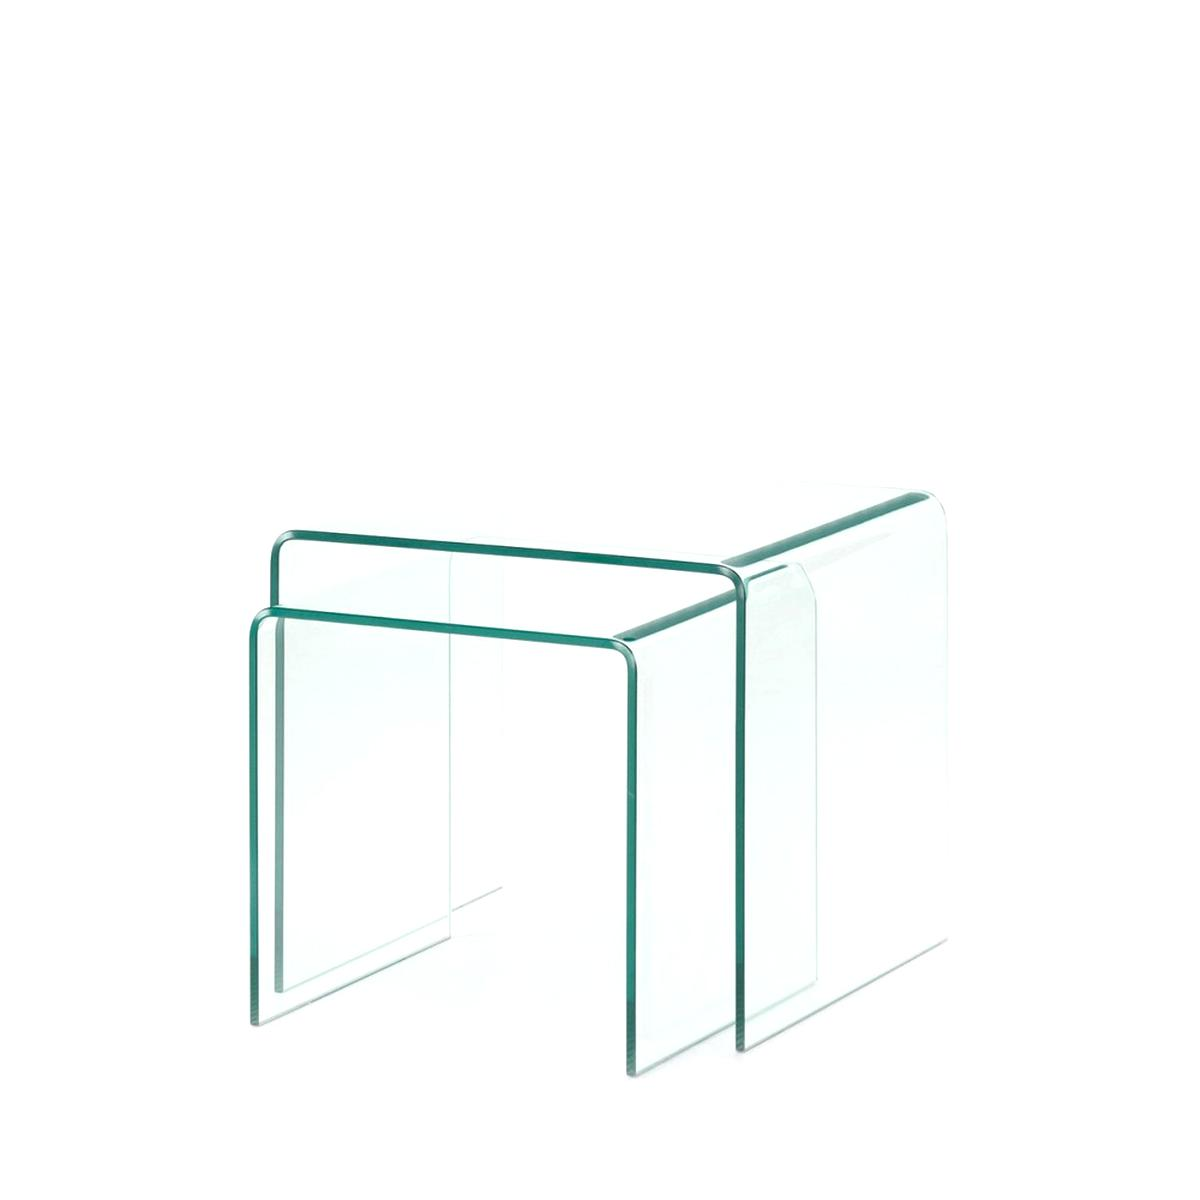 Table Table Gigogne Basse d'occasion Verre Basse Verre Gigogne Table d'occasion lKc5F3uT1J